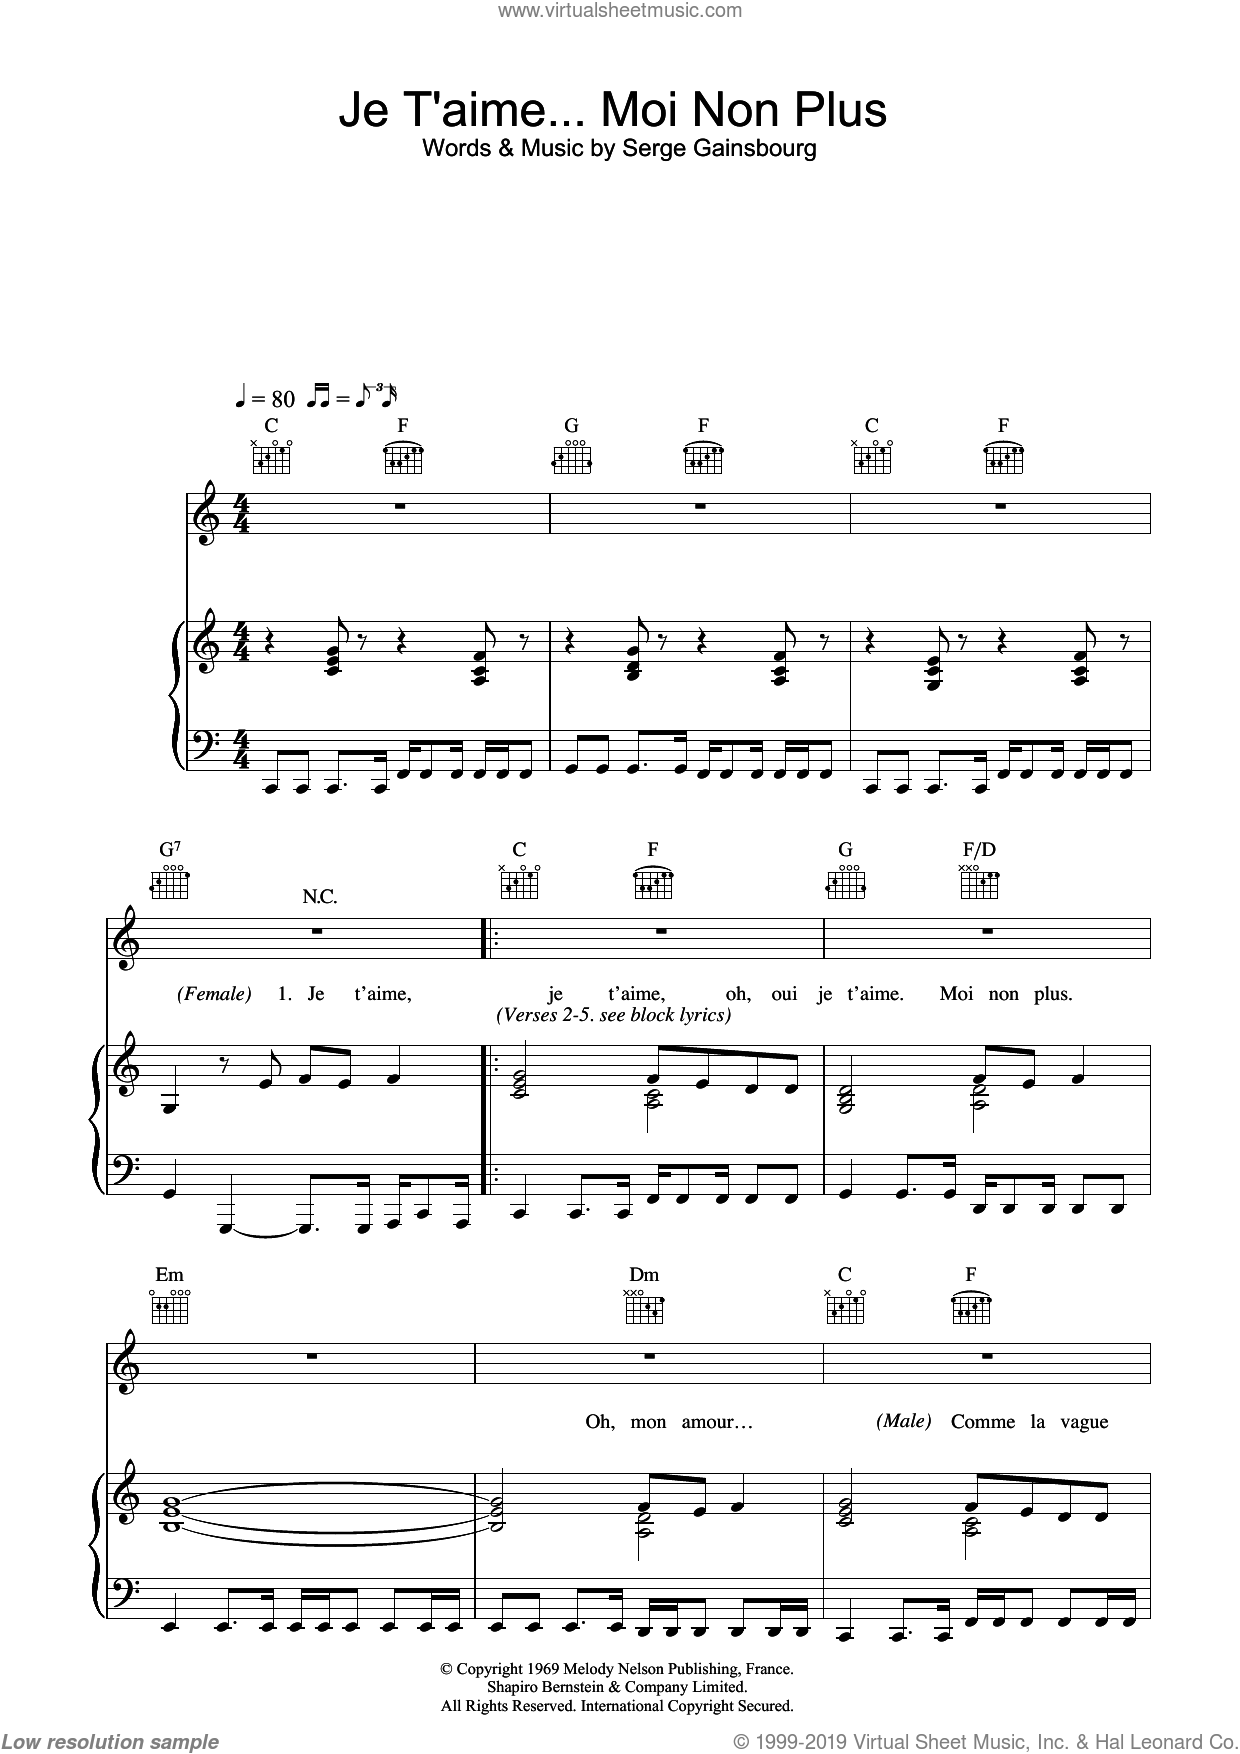 Je t'aime... moi non plus sheet music for voice, piano or guitar by Serge Gainsbourg